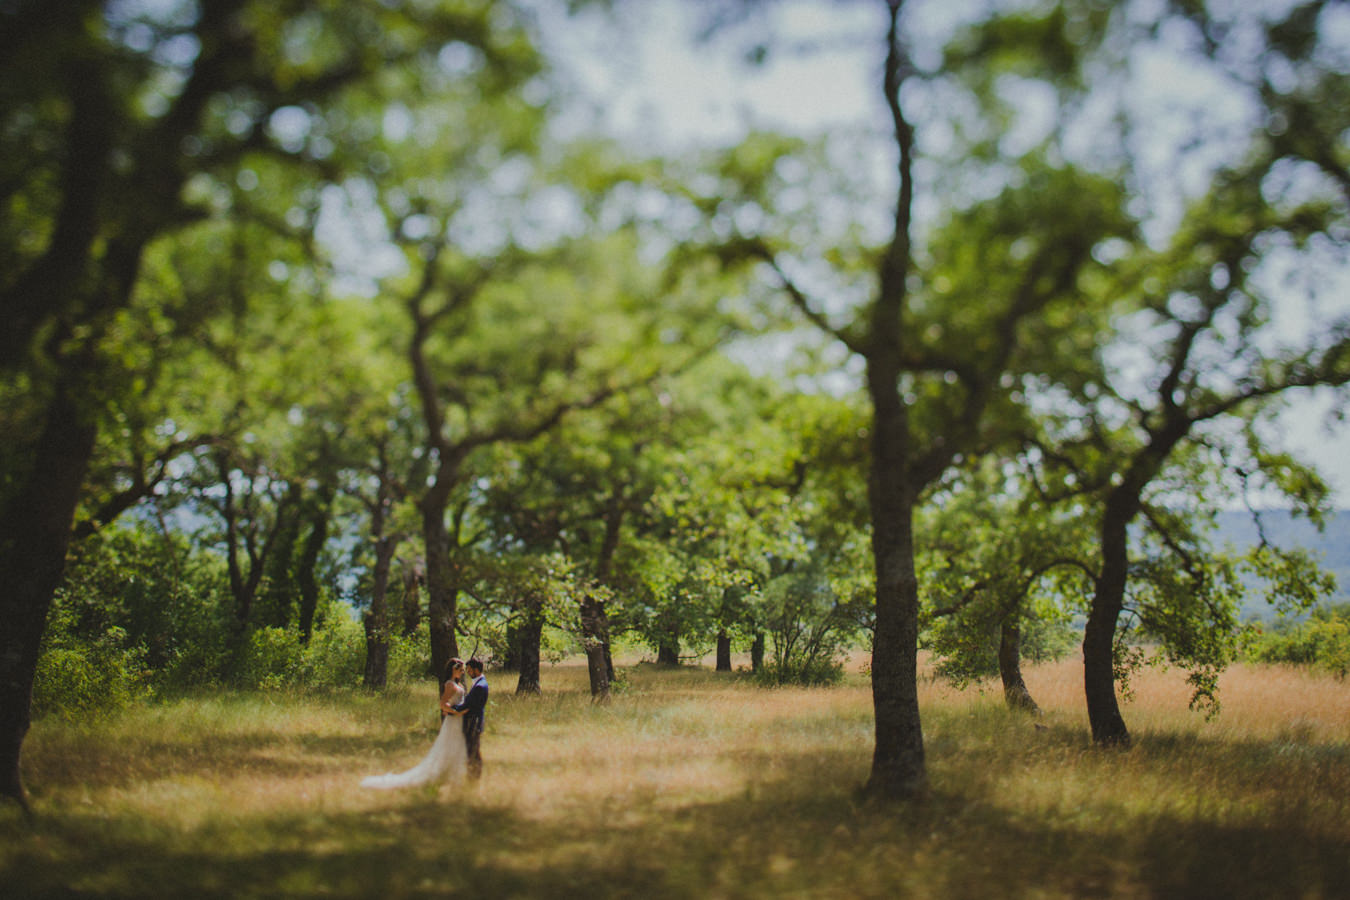 Image /var/www/vhosts/lvps92-60-120-255.vps.webfusion.co.uk/weddingphotographyselect/international/log-in/profiles/server/php/files/4033/WPS 03.jpg By Matija + Marina Weddings